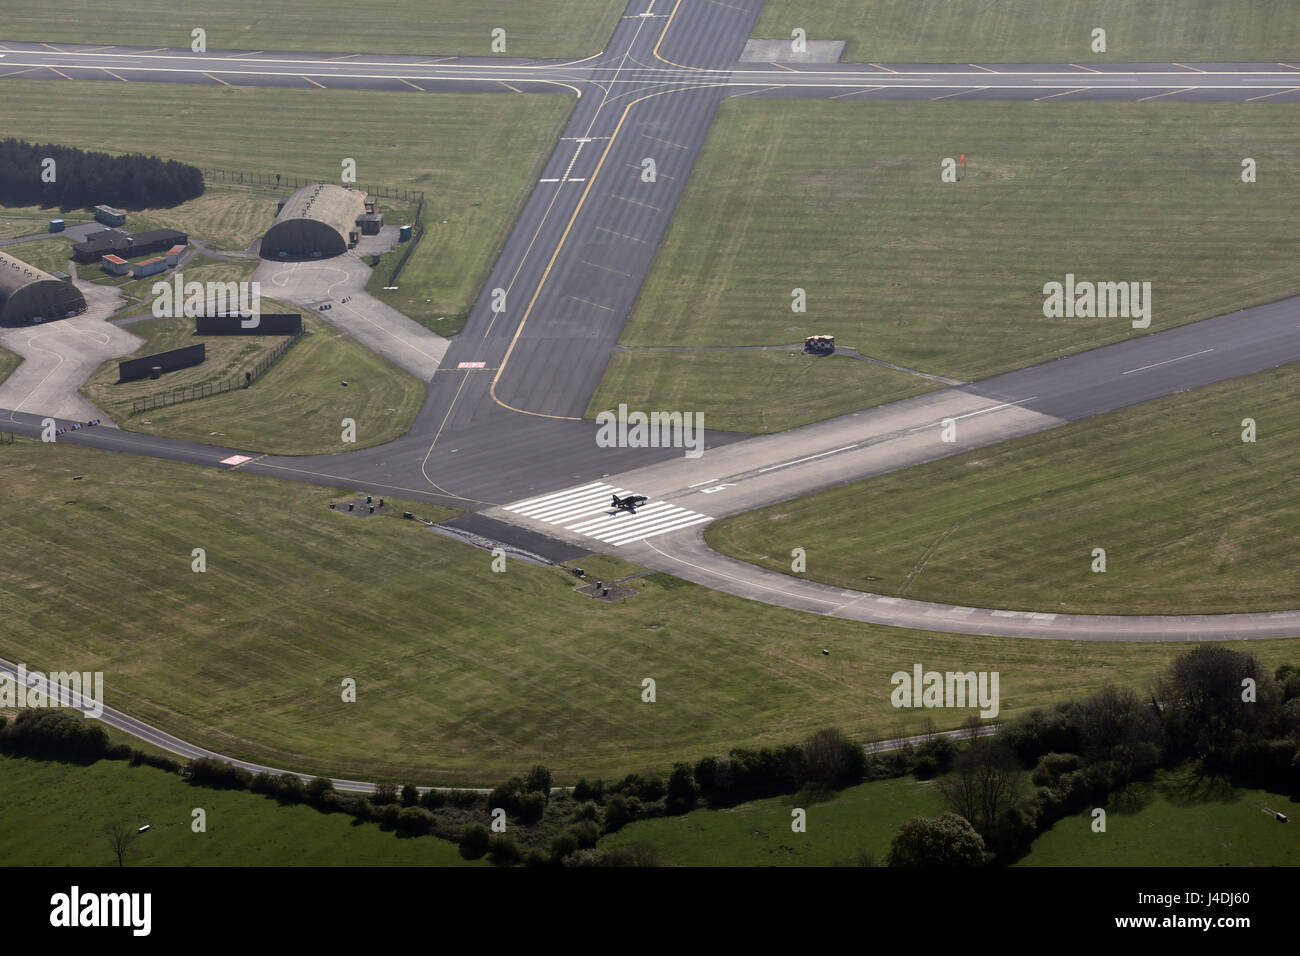 aerial view of a Tornado Jet Fighter on the runway about to take-off at RAF Leeming, North Yorkshire, UK - Stock Image